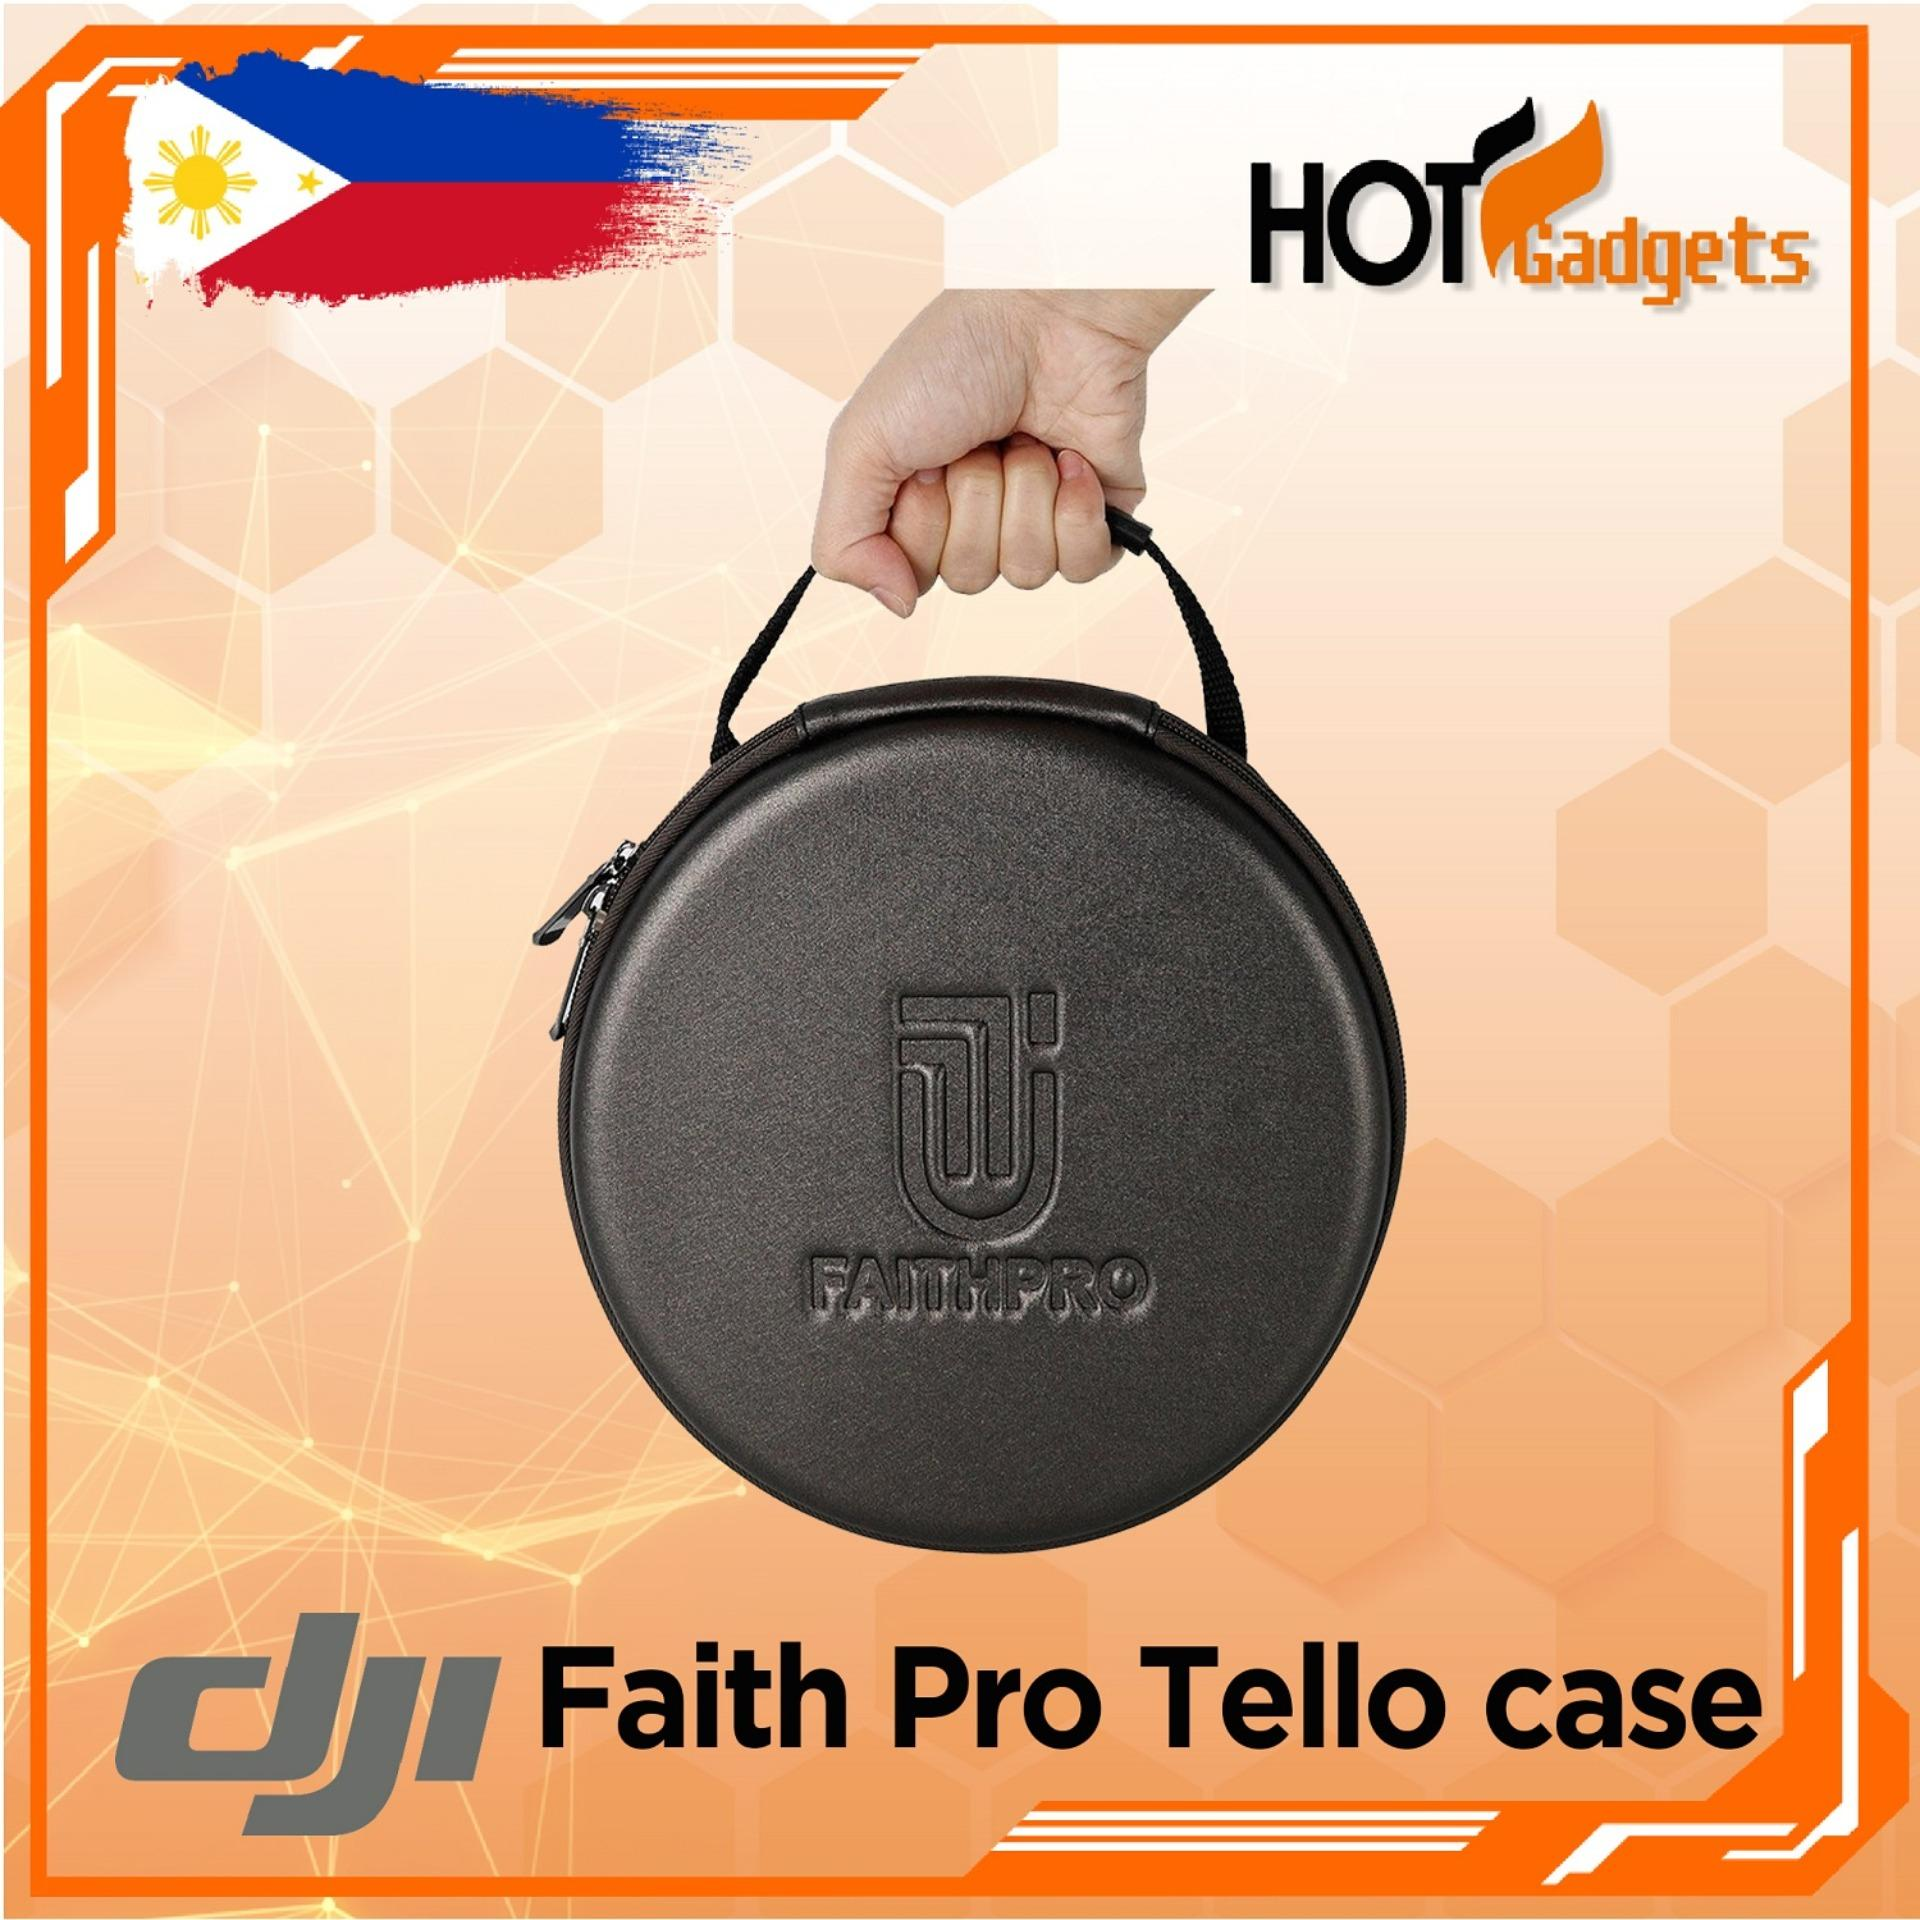 FaithPro DJI Tello Carrying Case Drone Portable Carbon Fiber Storage  Splashproof for DJI Tello Drone